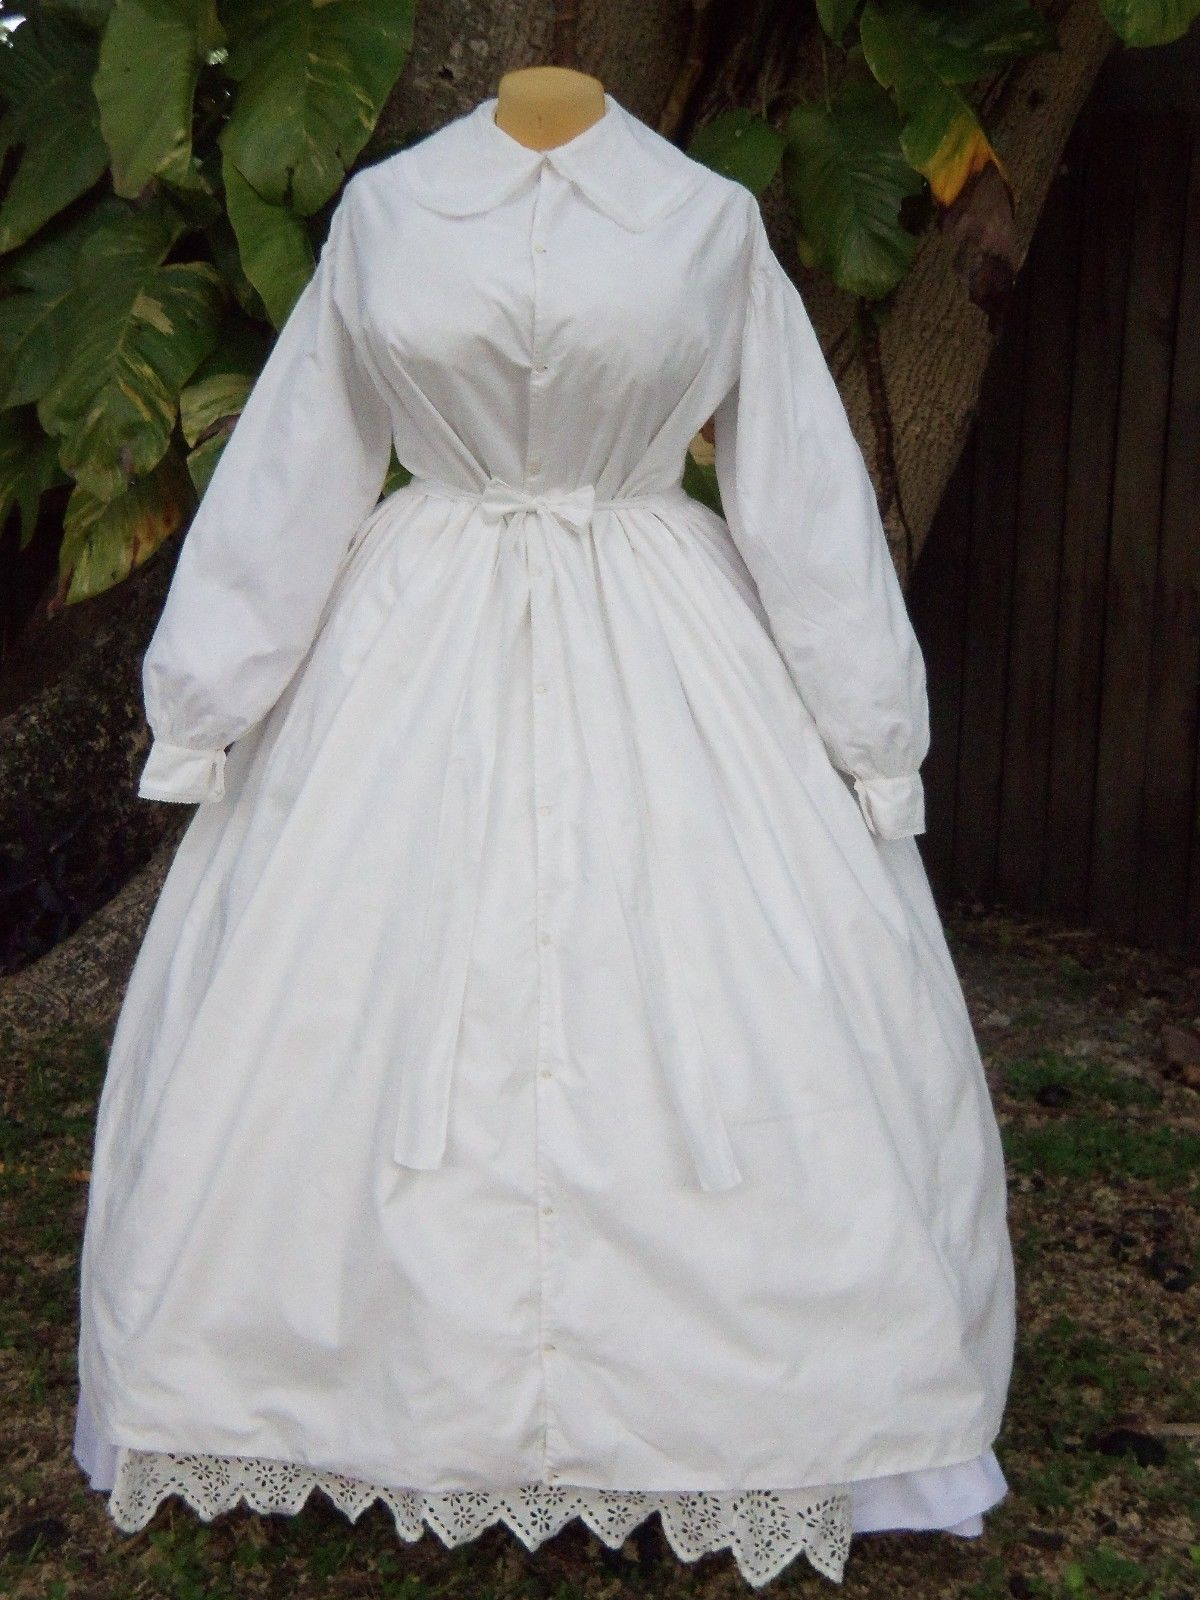 """(Maternity) Wrapper C1860 Lg Sz   eBay Interior drawstring holds it closely to the figure at back, but could be dispensed with eventually & lg amt of fabric at front would accommodate the figure. Crisp white cotton & decorated w/tiny embroidery. Self-lined in front panels, back part of skirt unlined- only faced at hem. Fastens w/tiny pearl buttons all the way to hem, can be left open from waist to show petticoat.  Note: petticoat shown NOT included.  43"""" B, 31"""" W. Skirt 36"""" L front/39.5"""" L…"""